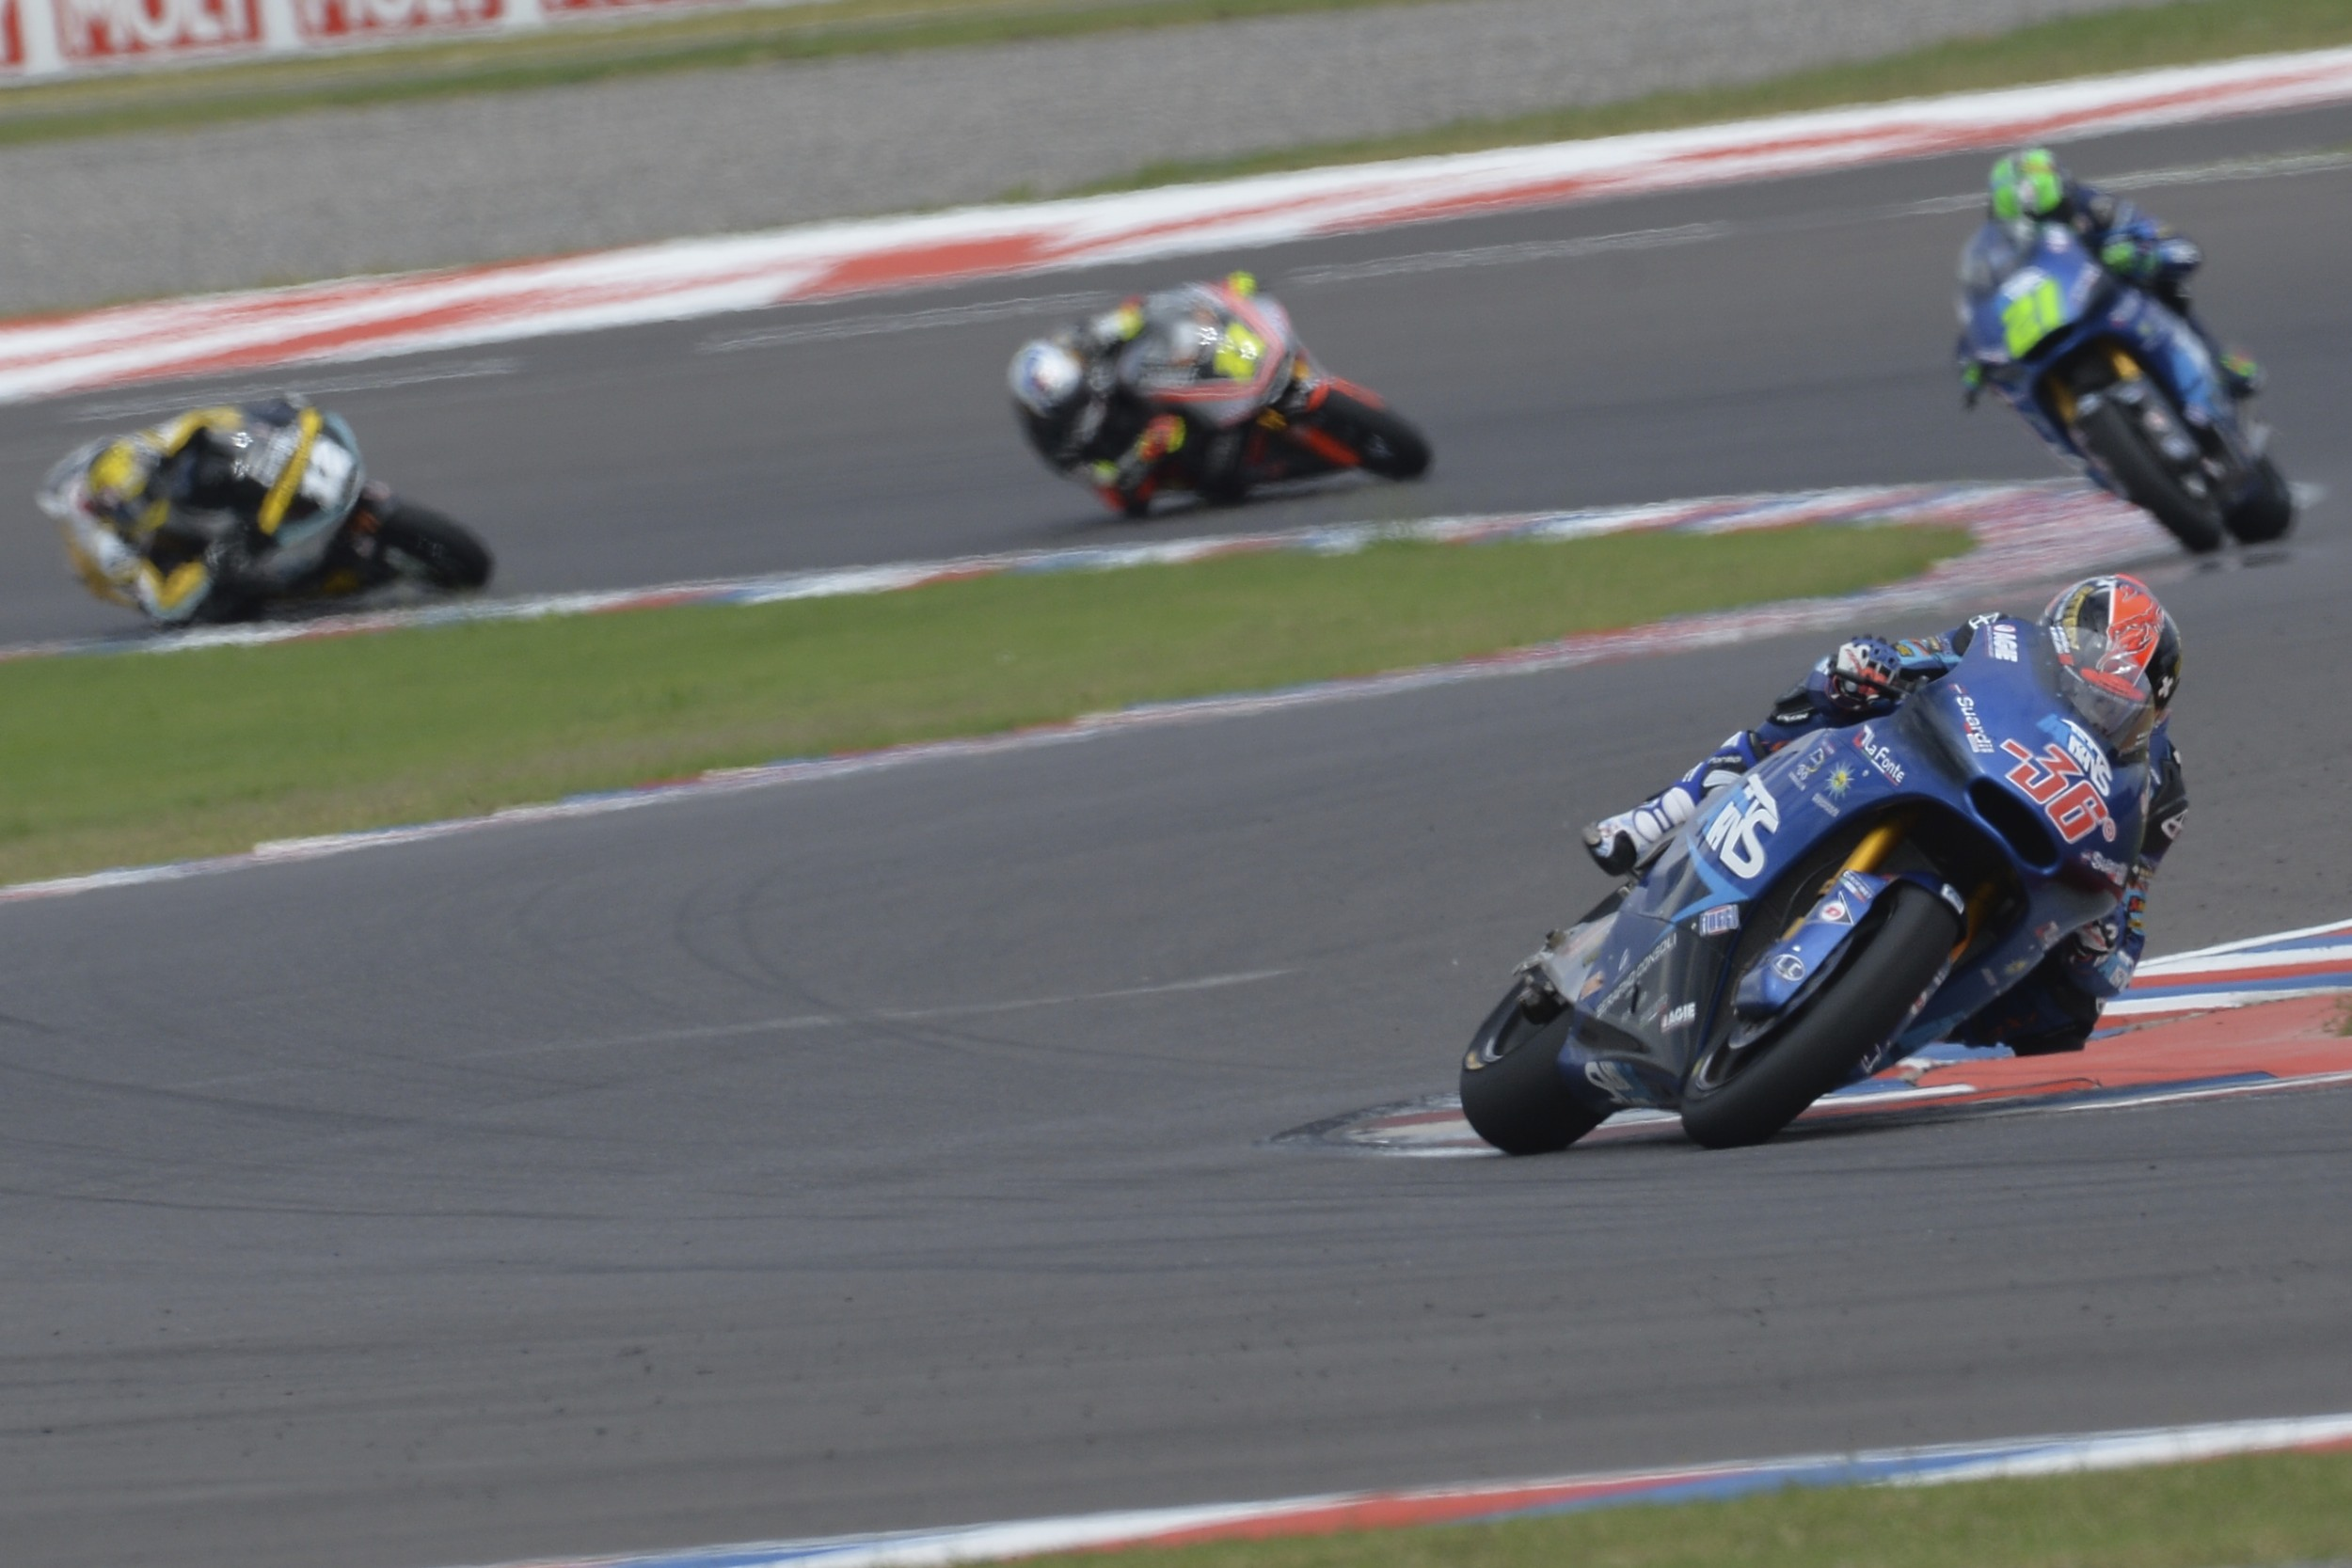 Kallio and Morbidelli, GP Argentina, race